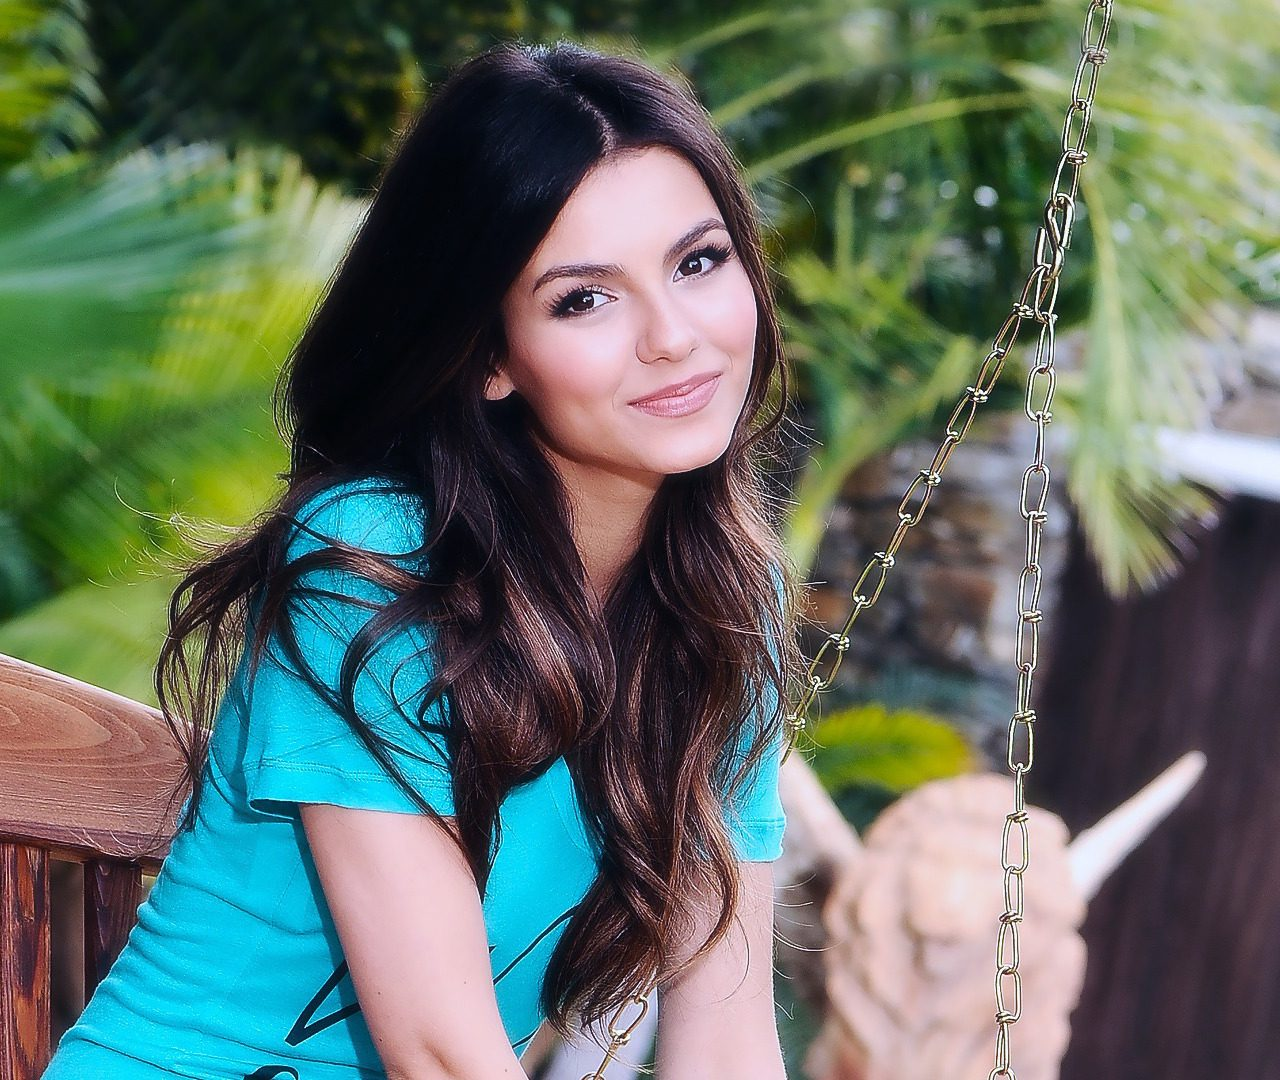 Victoria Justice Wallpapers High Quality HD